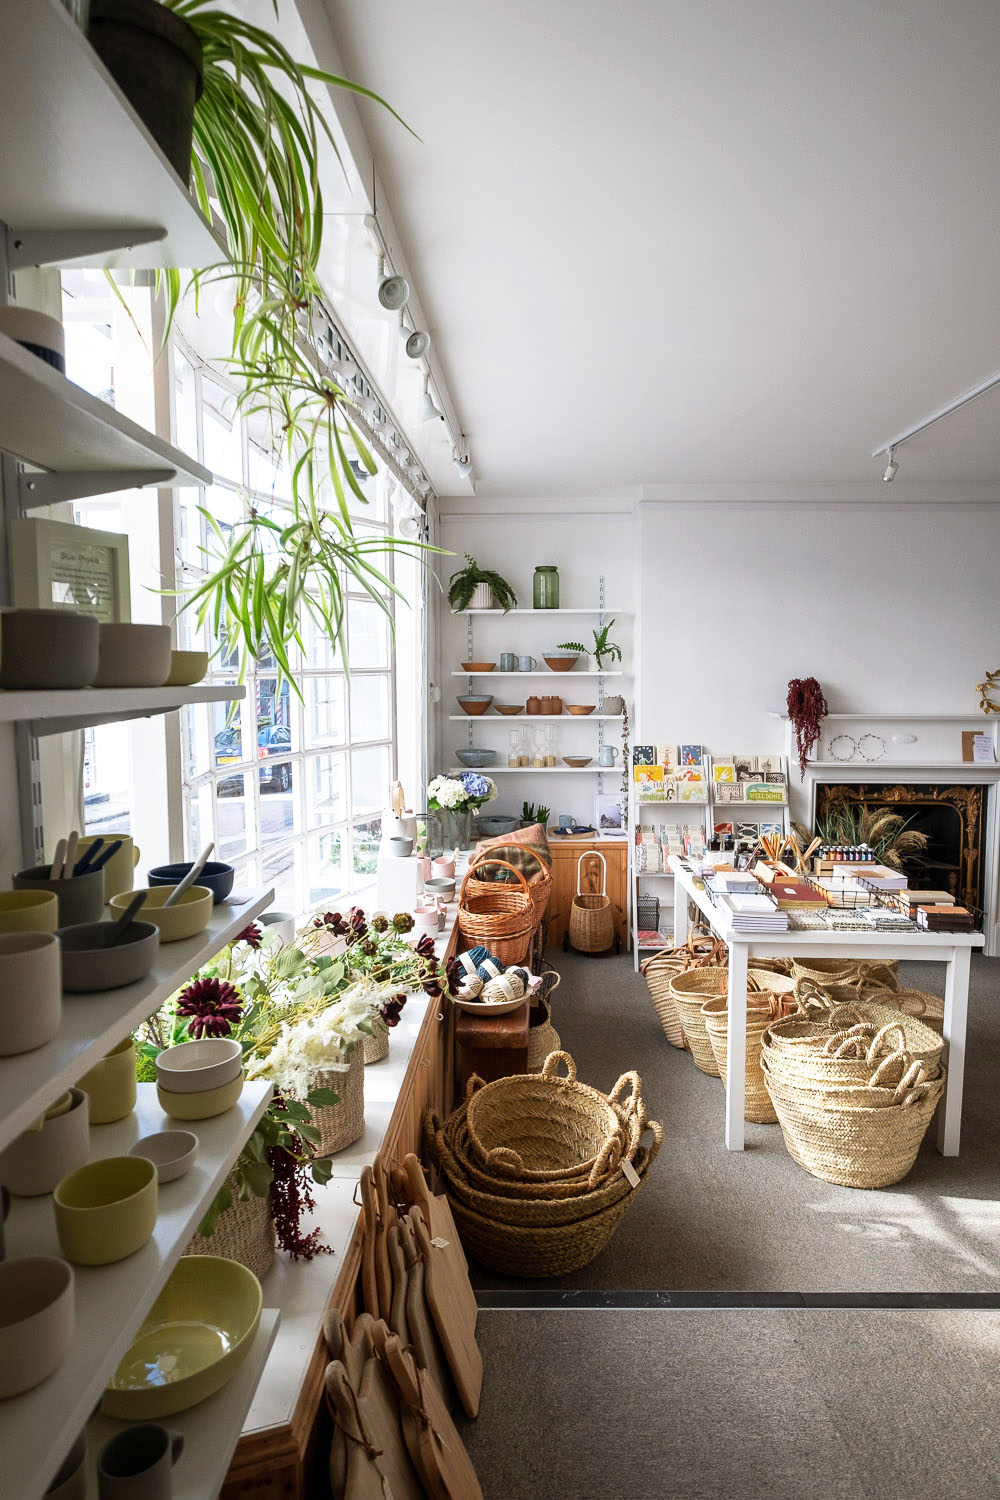 No. 56 homeware shop in Penzance | A 5-day guide to beautiful Cornwall by Mondomulia